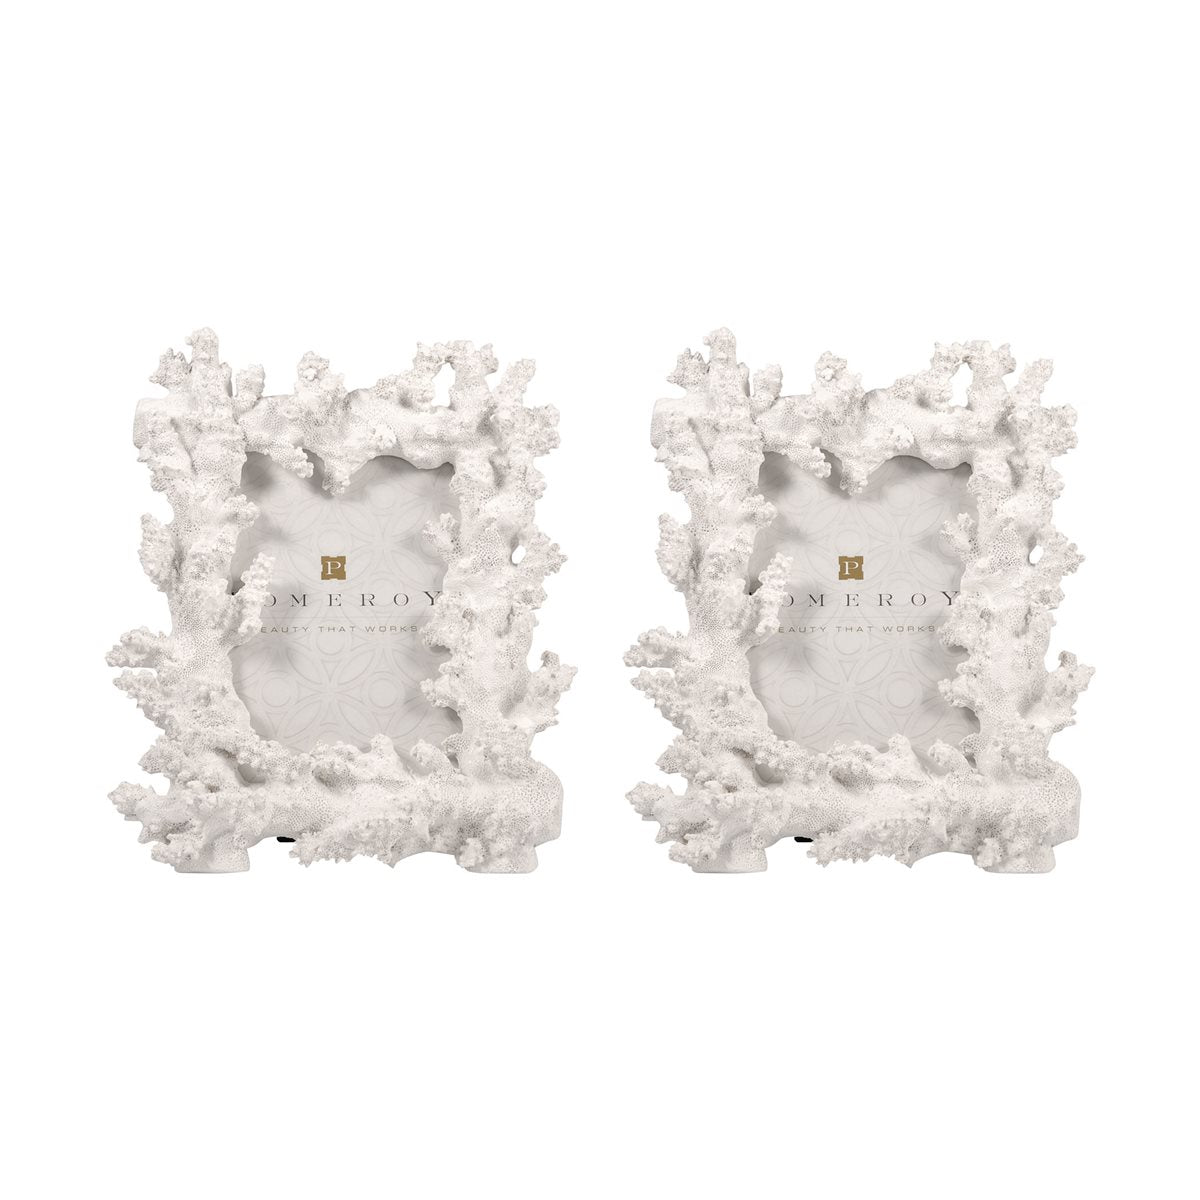 Coralyn Picture Frames (Set of 2)